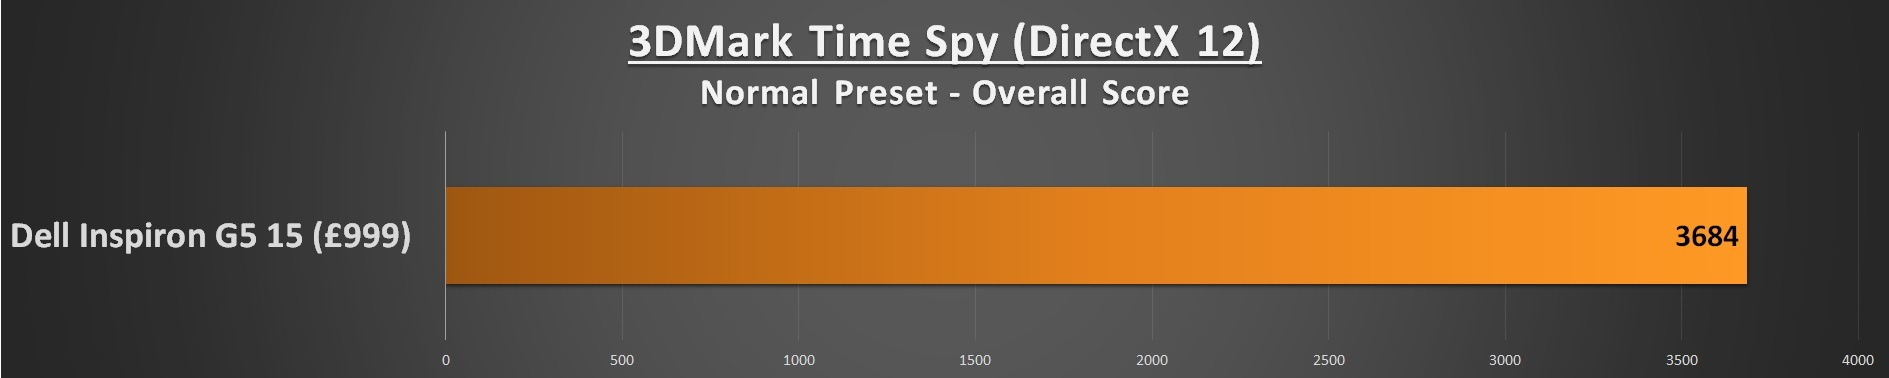 Dell Inspiron G5 15 Performance - 3DMark Time Spy